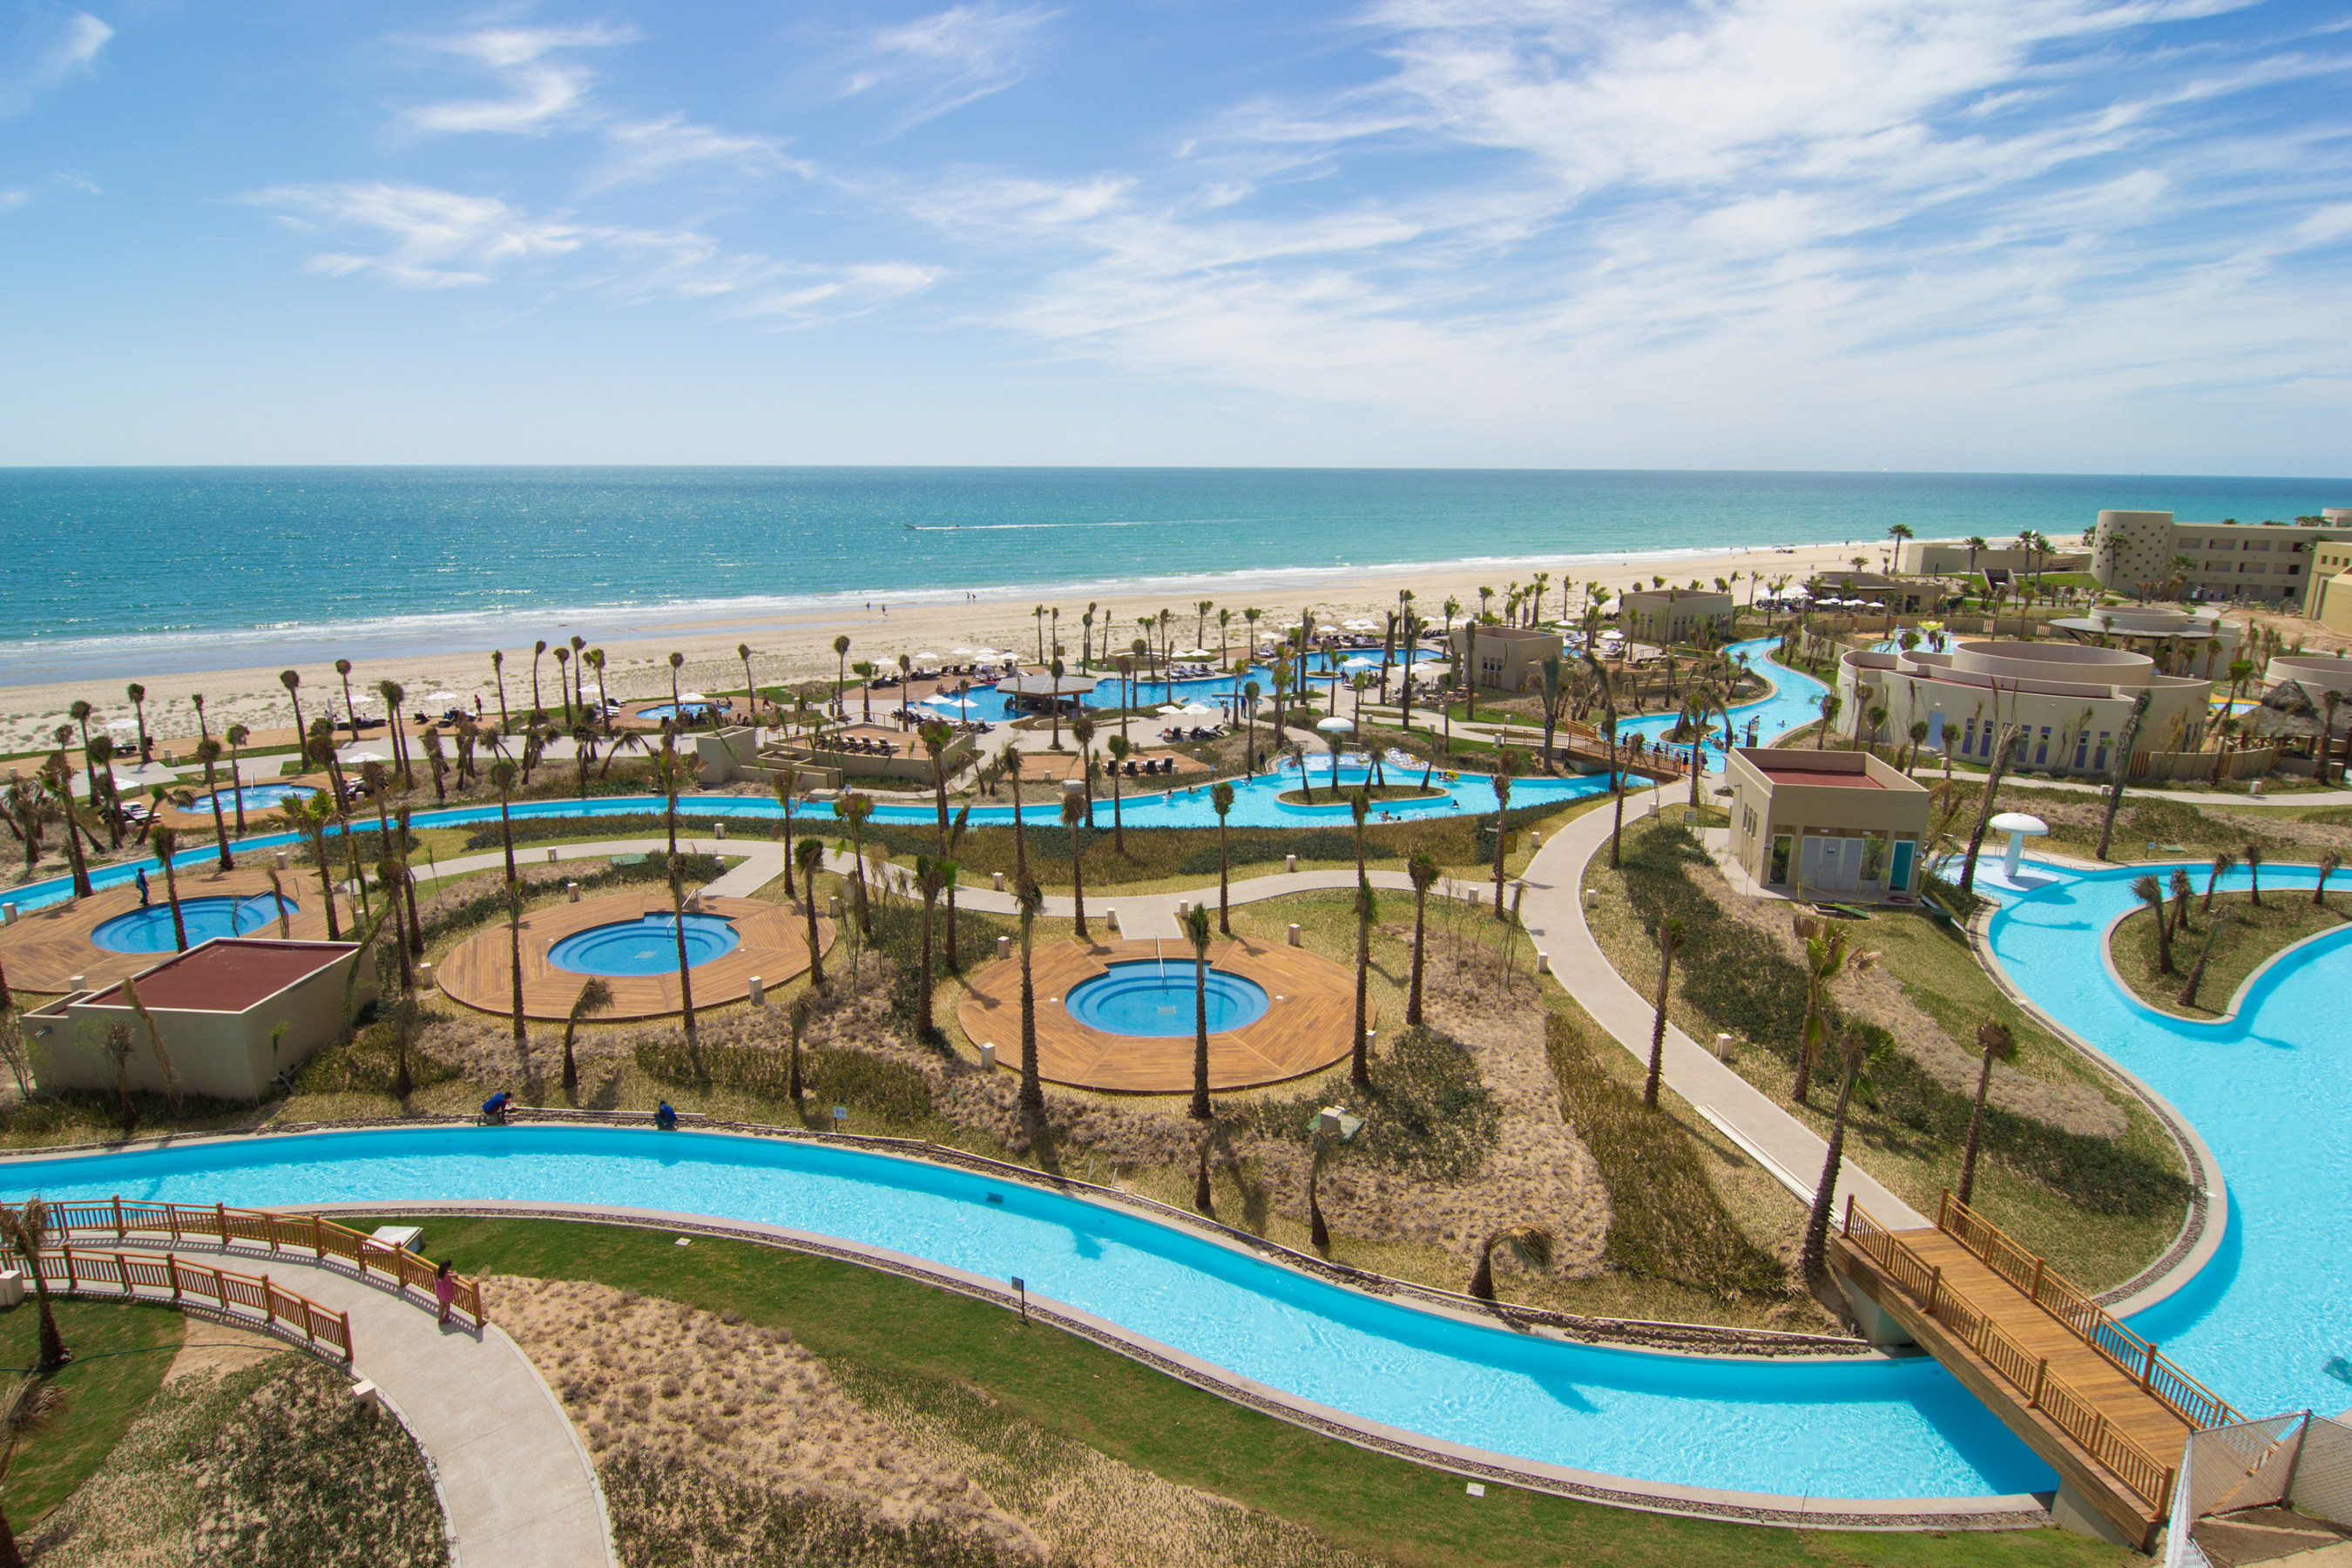 The Grand Mayan Puerto Penasco offers an elevated level of luxury to travelers.